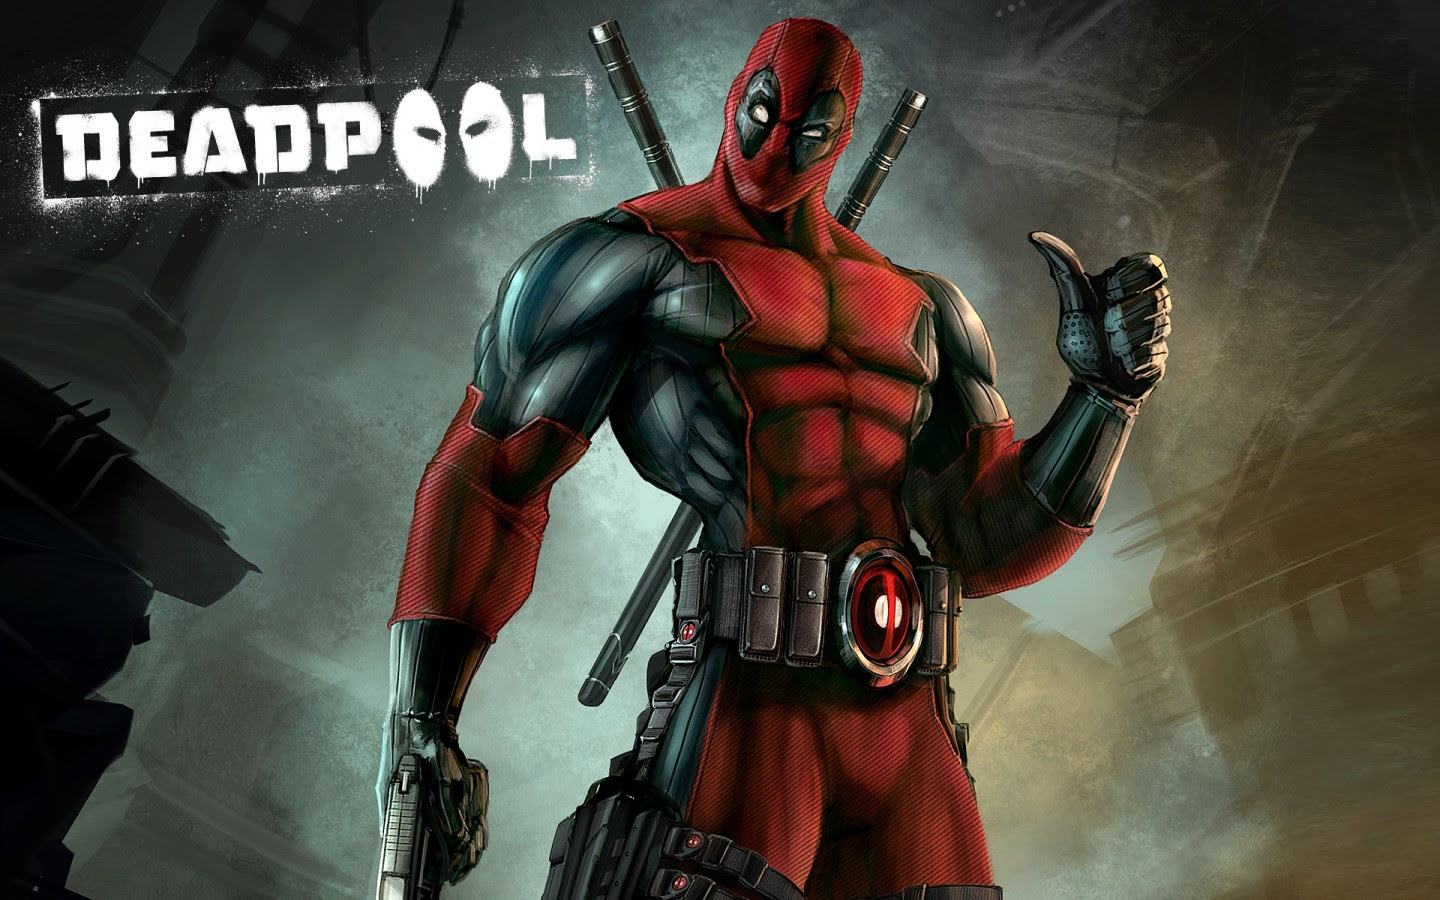 Download 1440x900 Deadpool Marvel Comics Wallpapers For Macbook